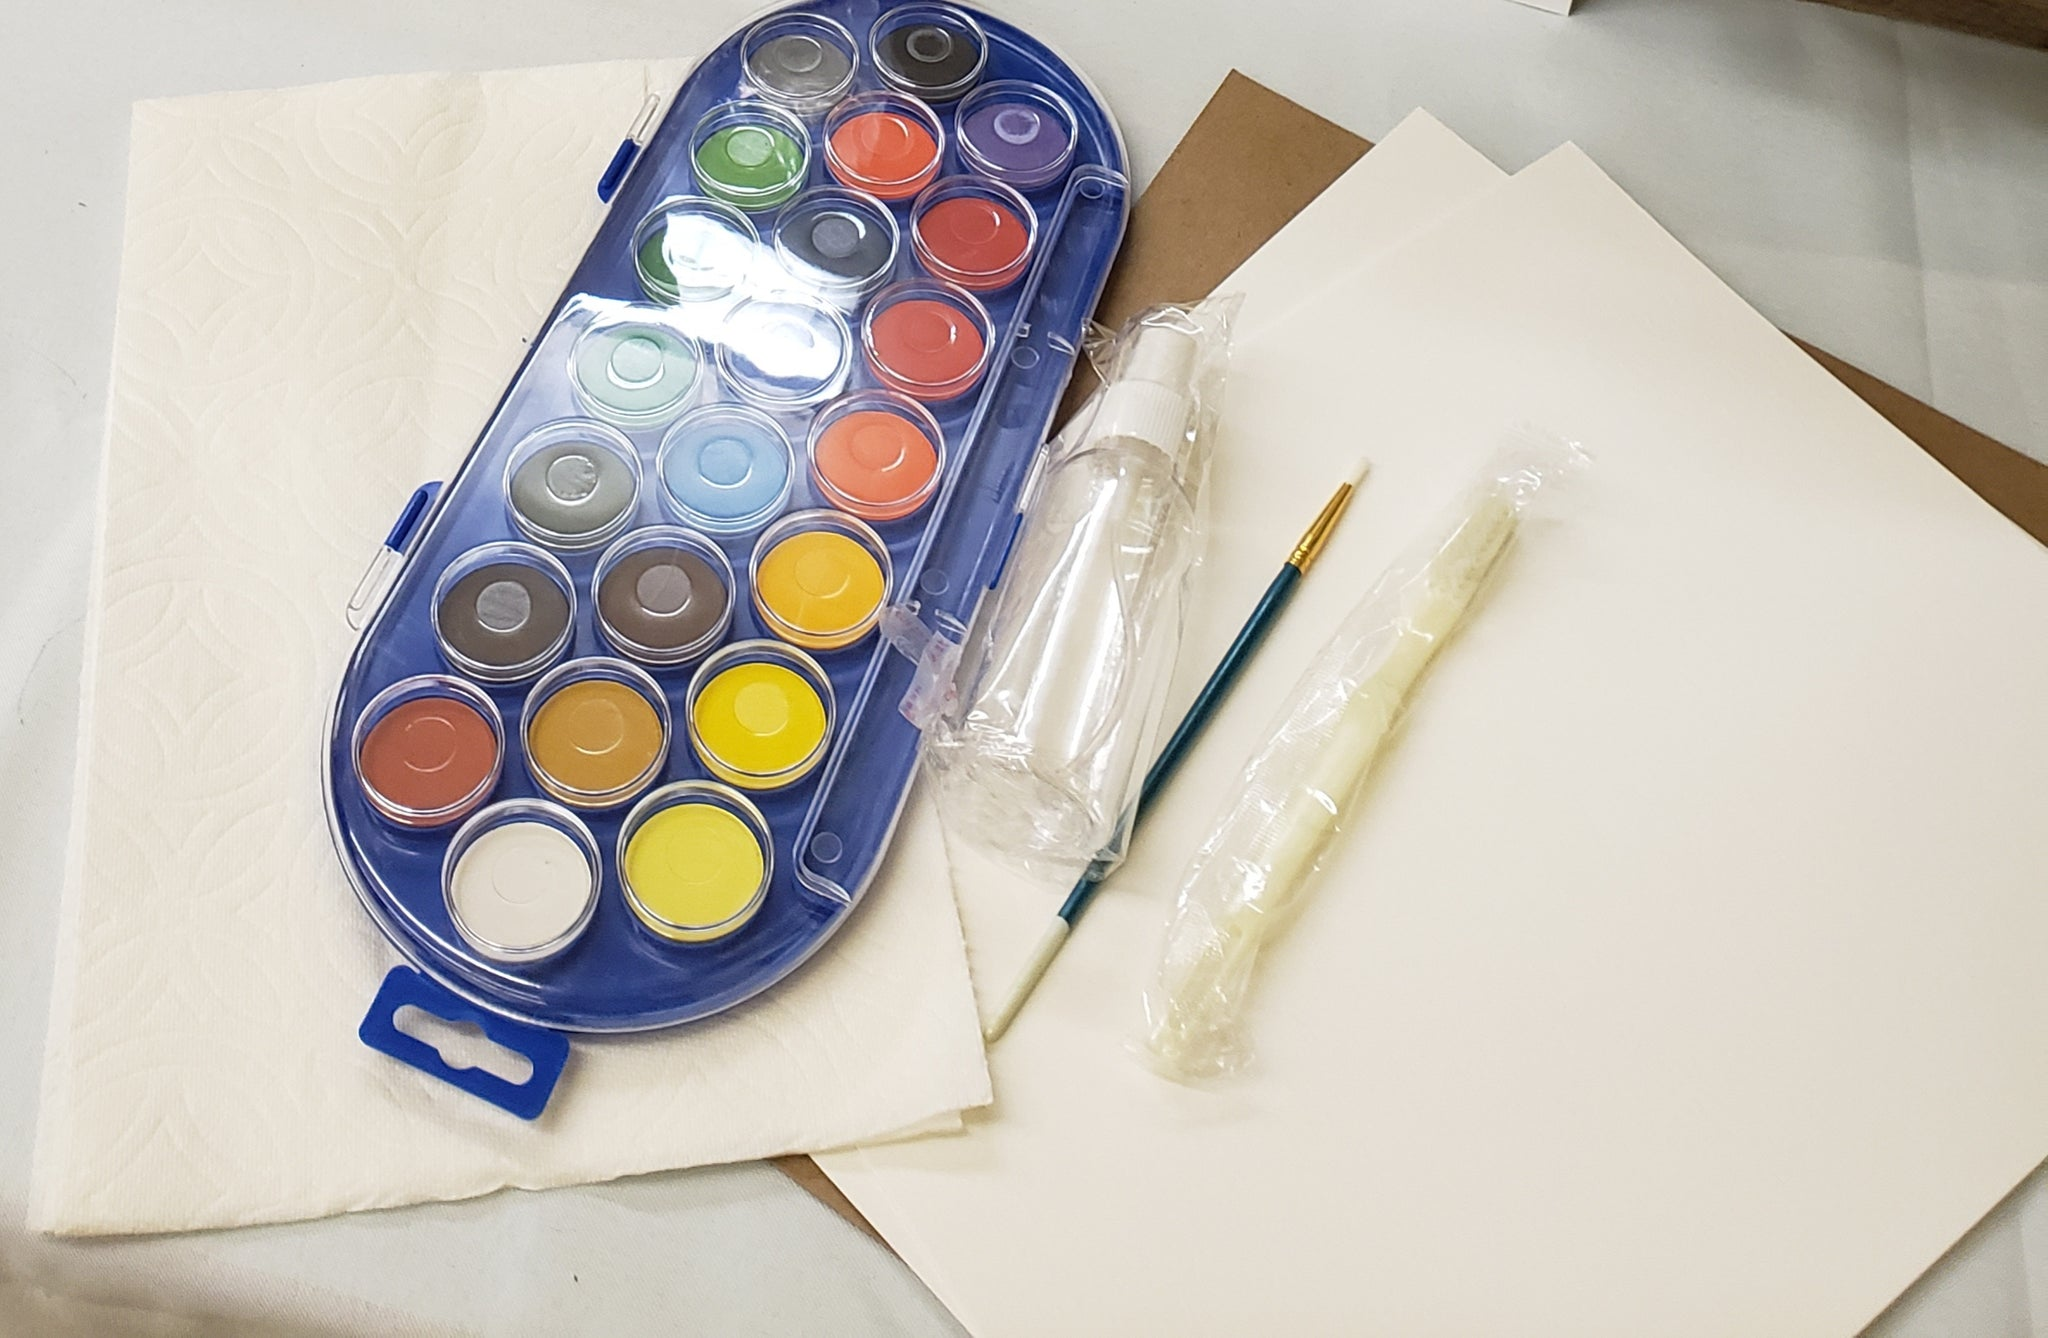 Starter watercolor kits - DIY projects